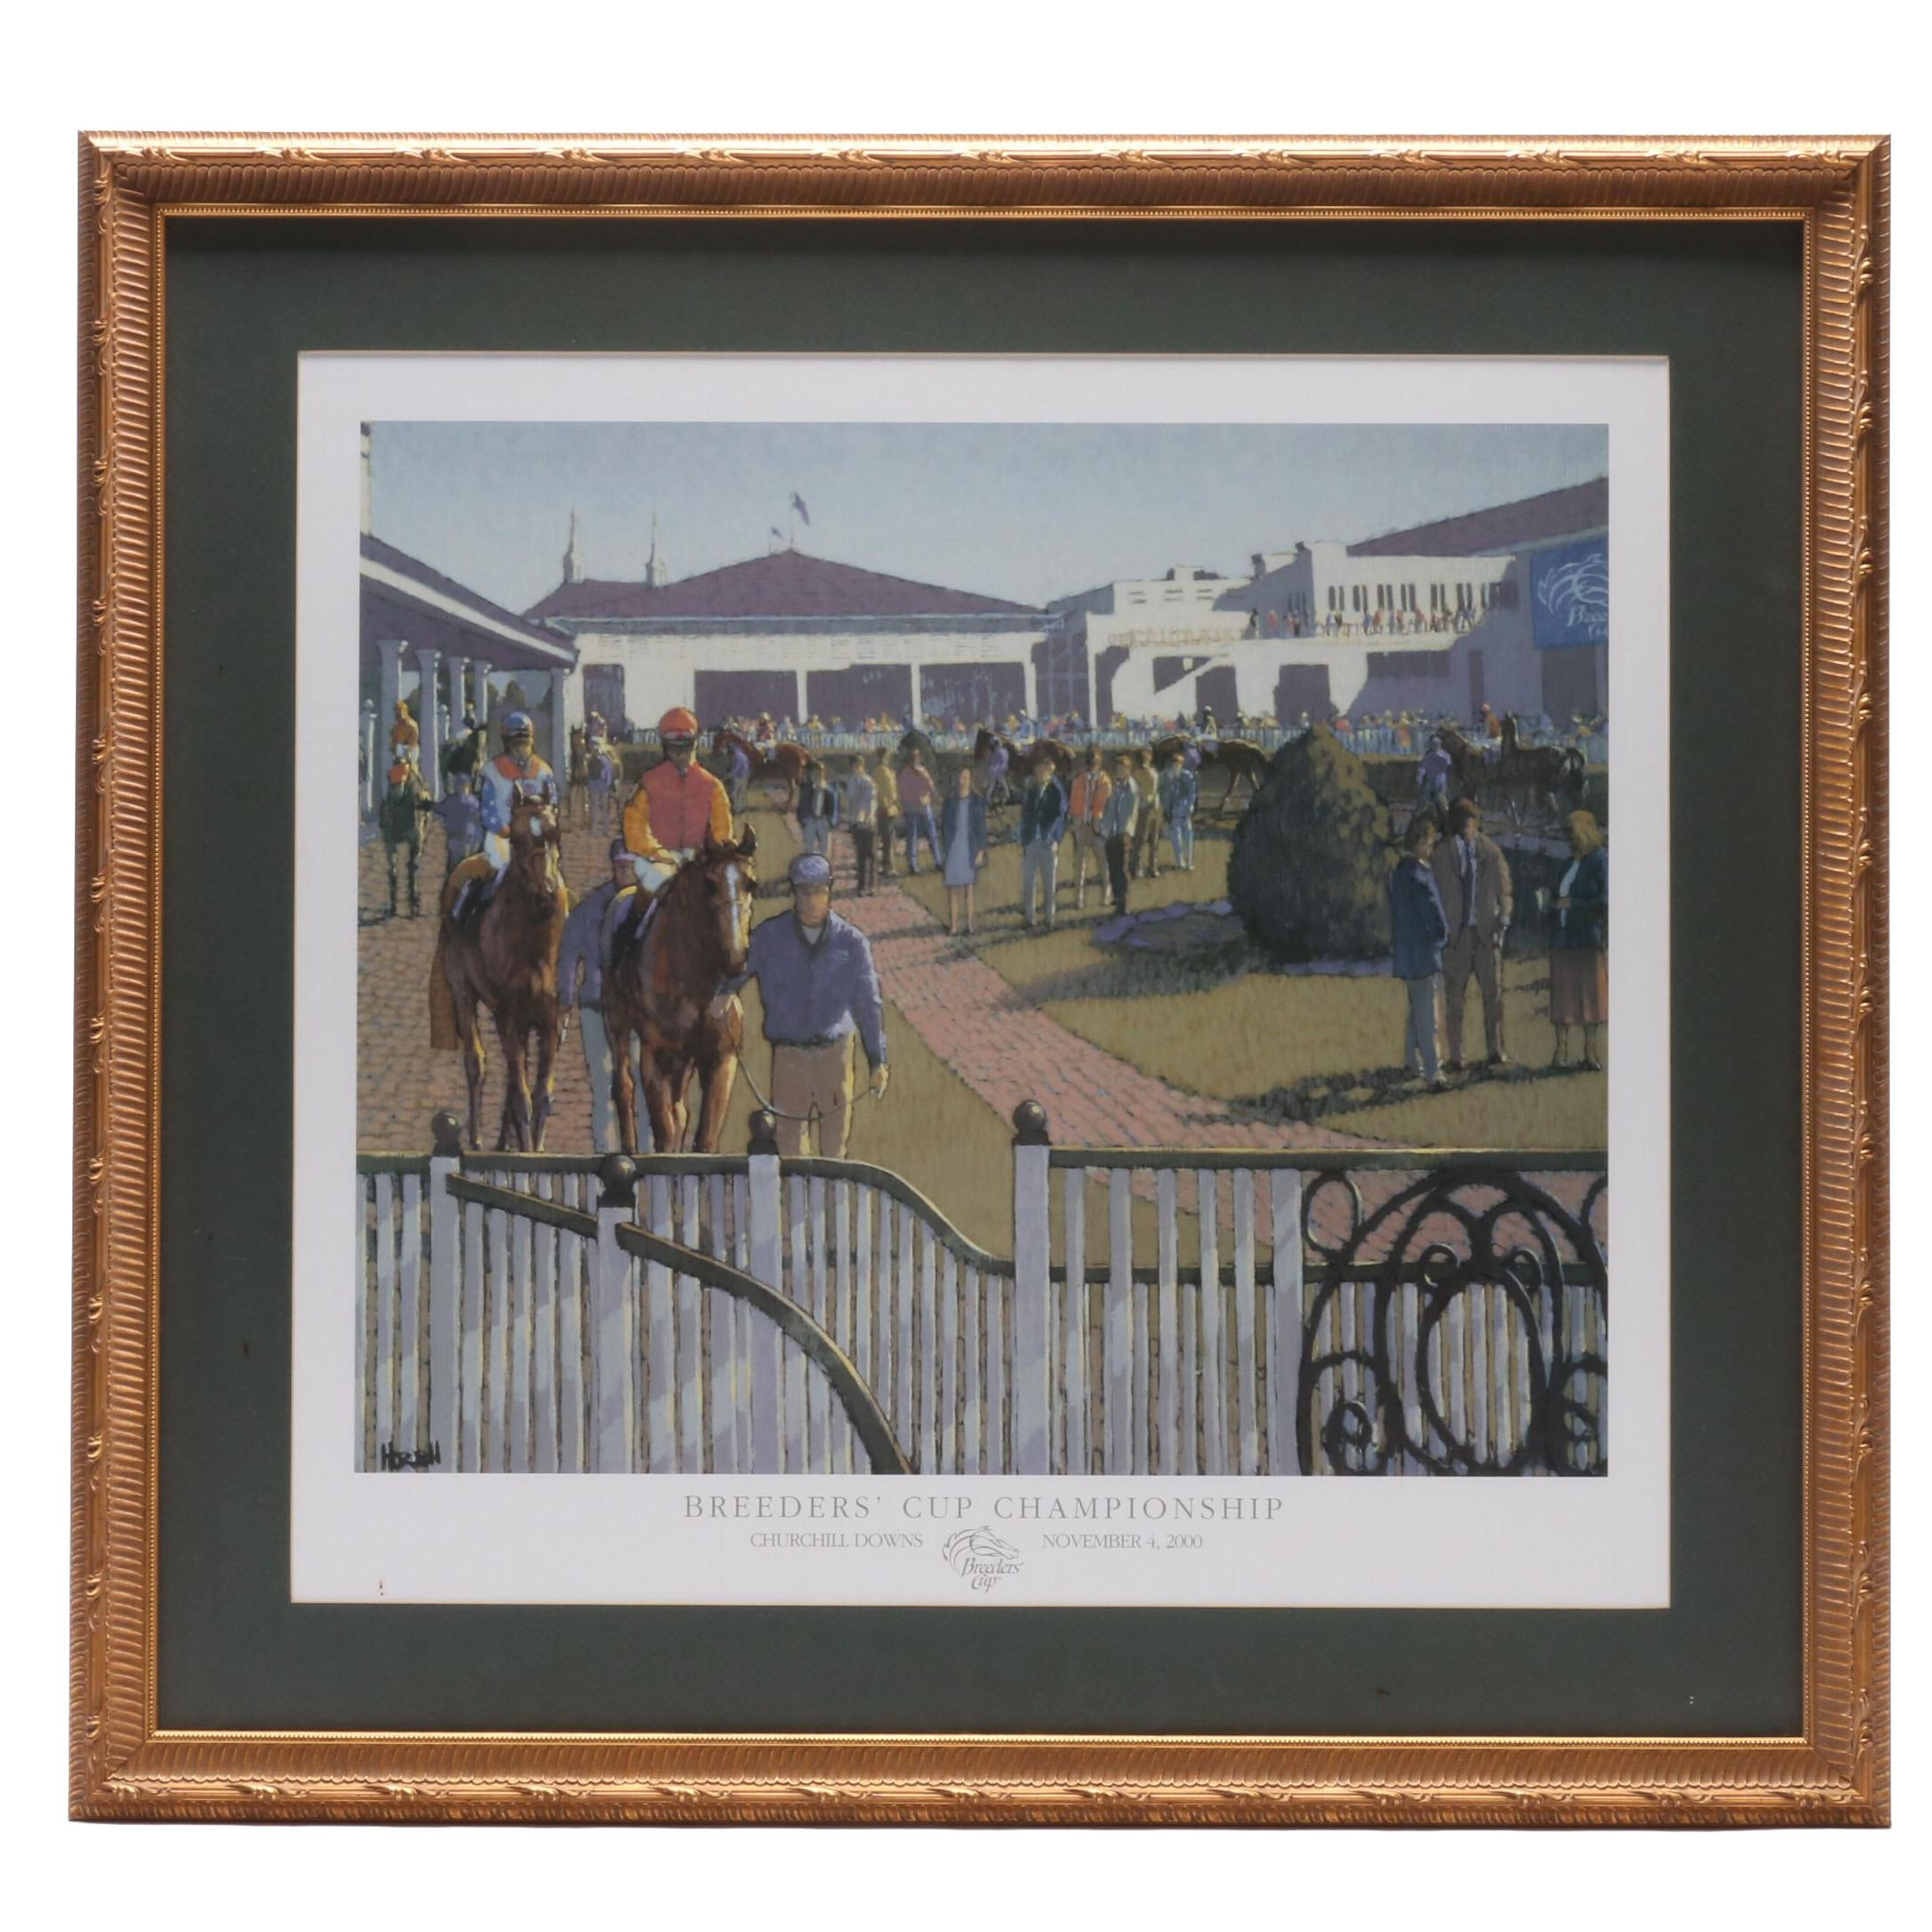 Churchill Downs 2000 Breeder's Cup Championship Commemorative Poster